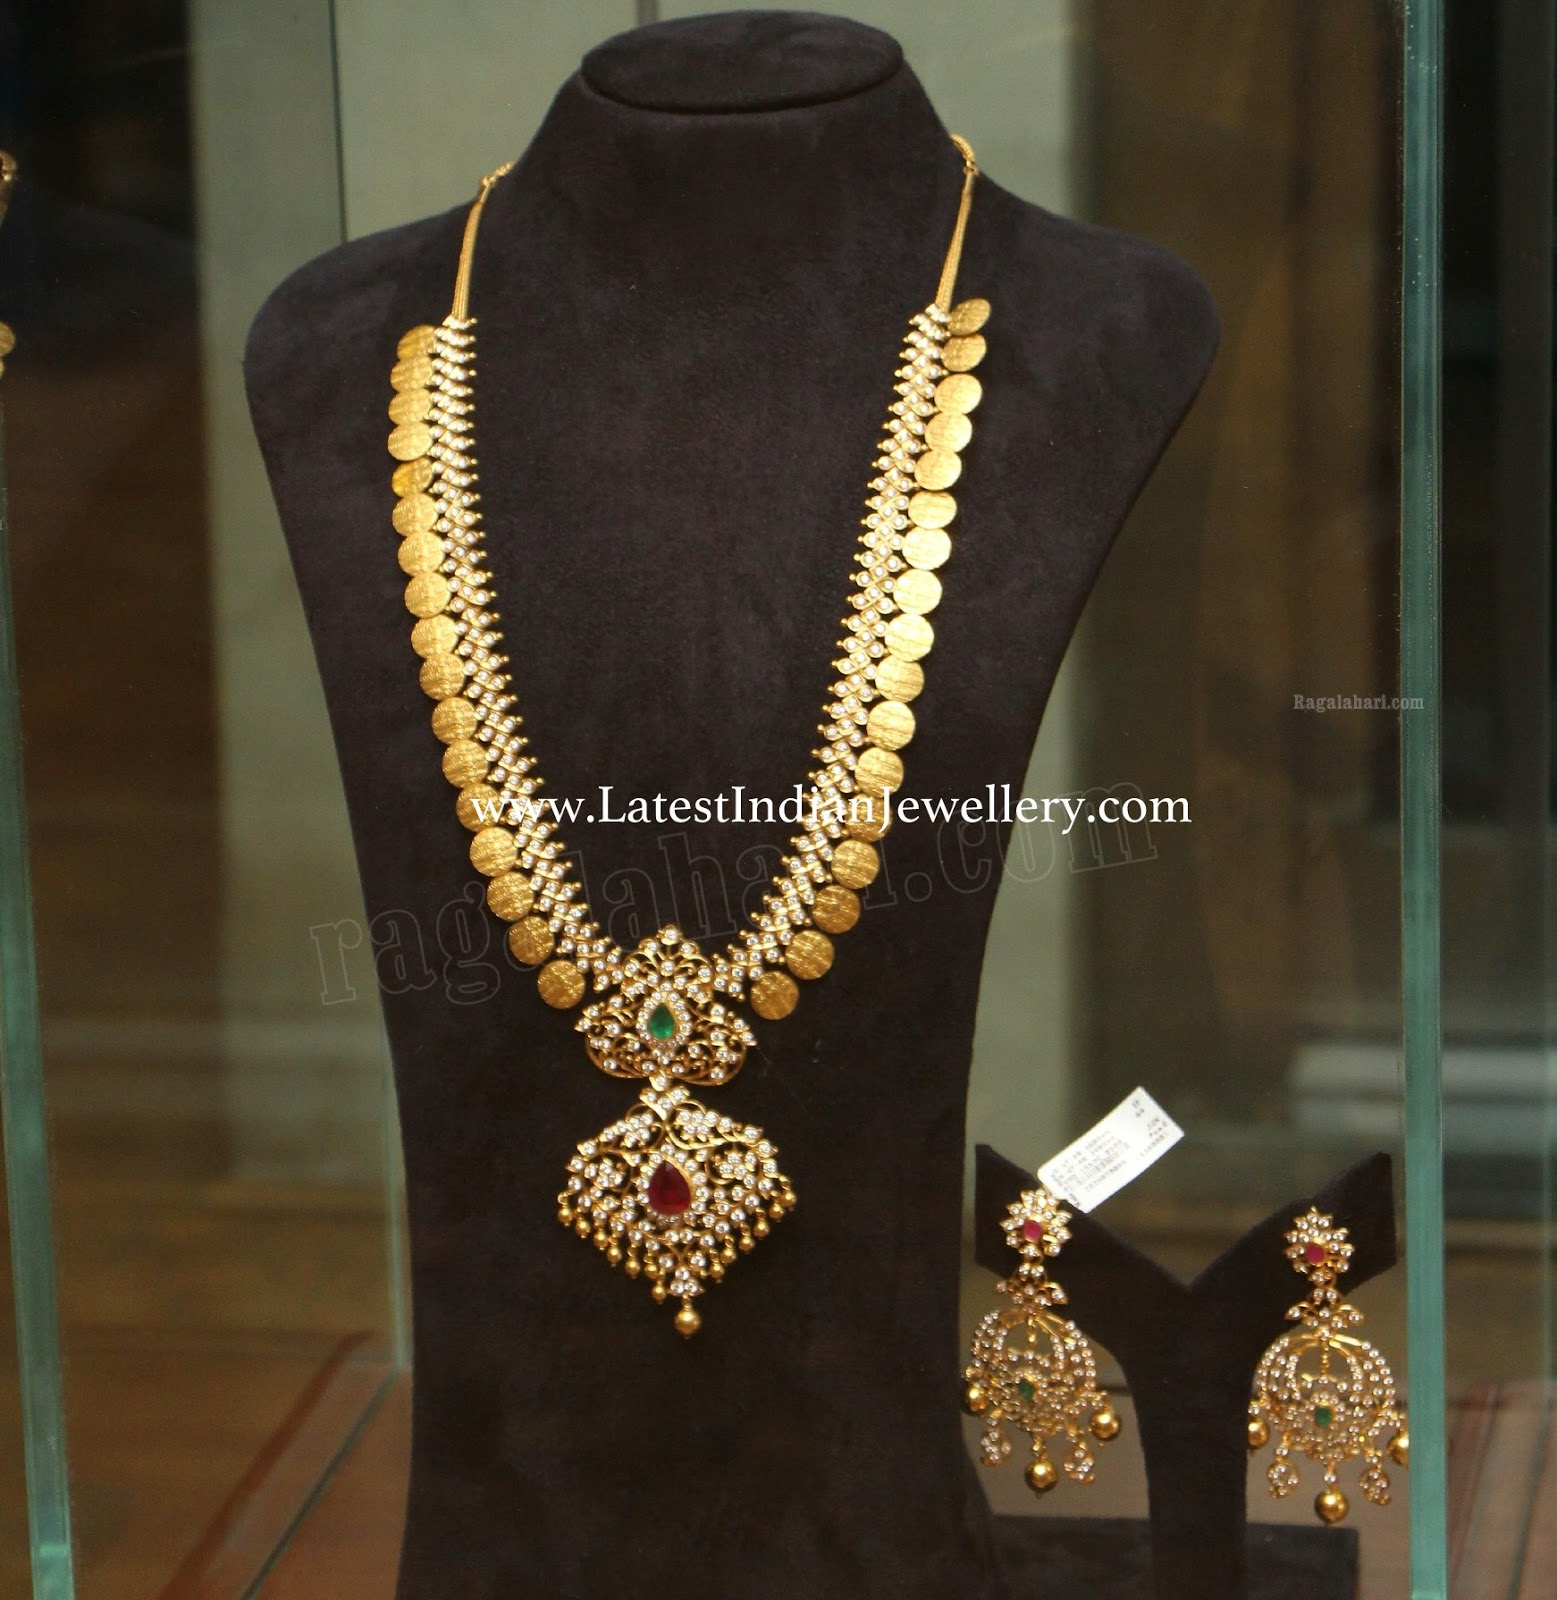 shops jewellery stores in by necklace best diamond indian to hyderabad buy manepally set bridal the blog wedding